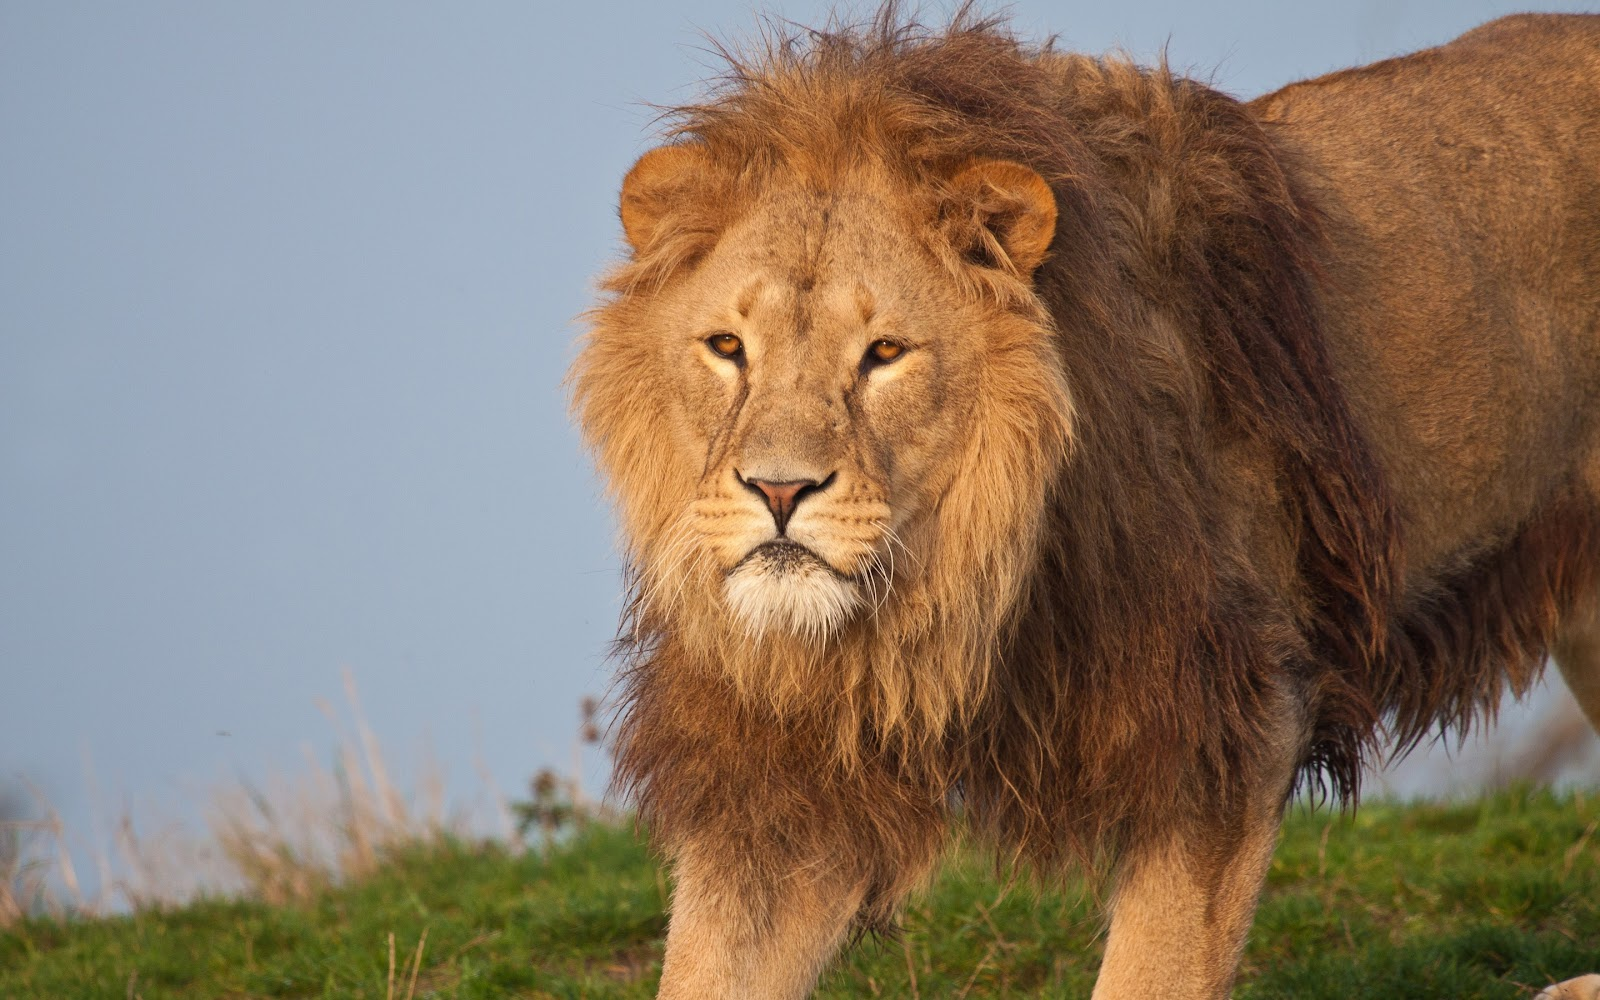 Lion Hd Wallpapers: Lion Full HD 1080p Wallpapers